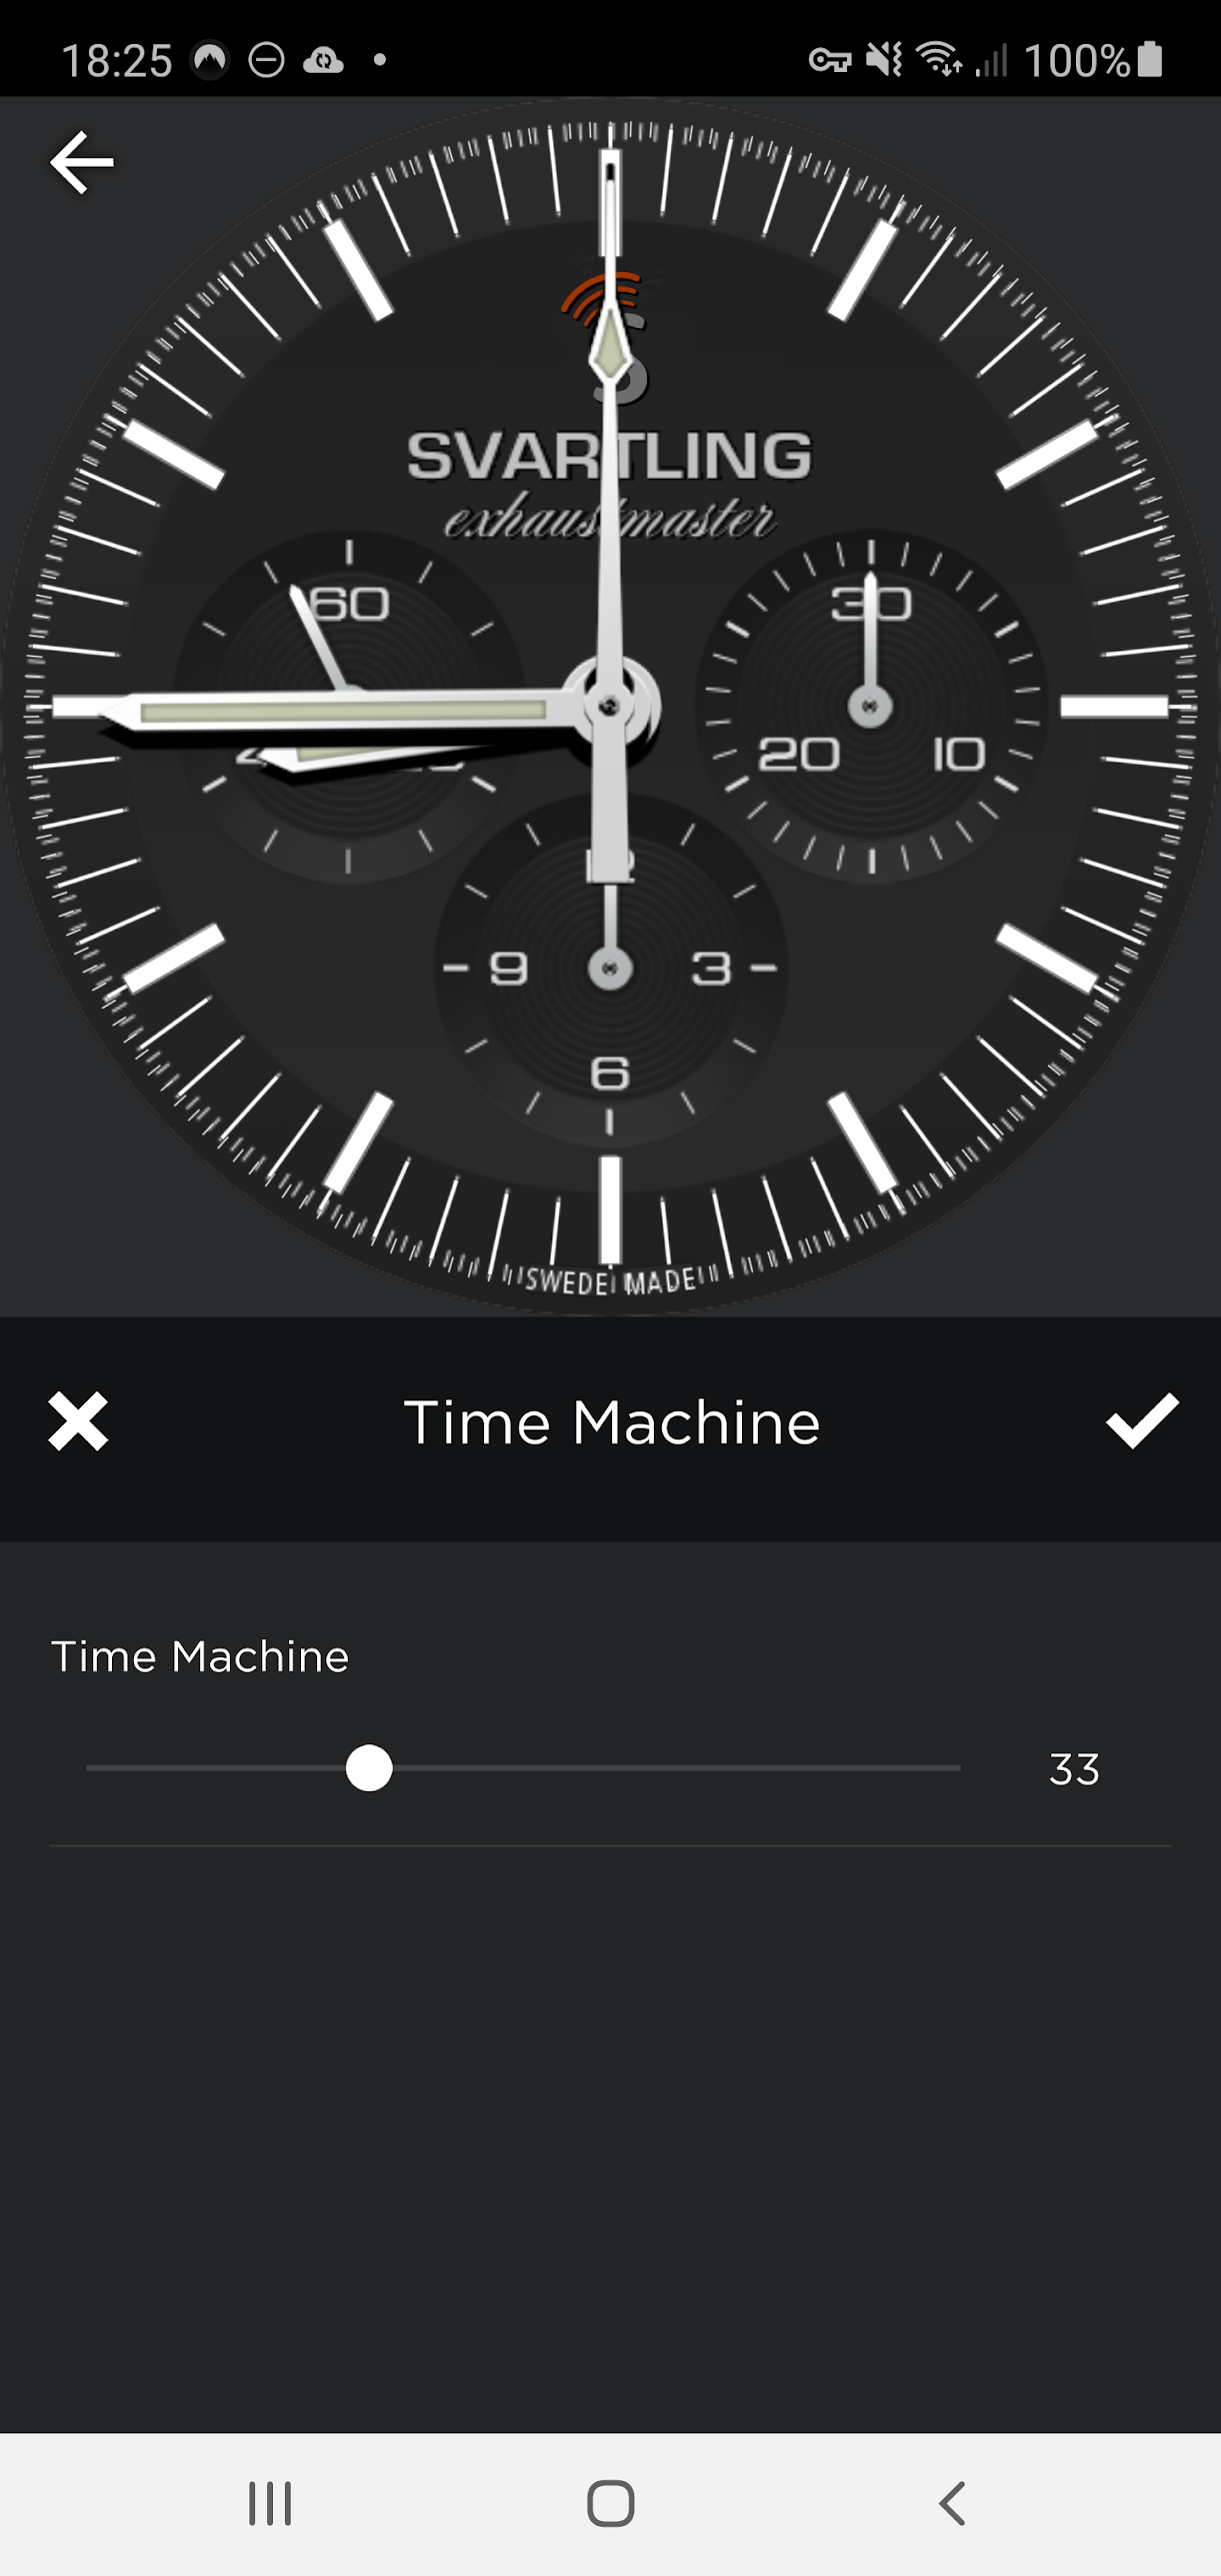 My latest FREE Watch Face: SVARTLING Exhaustmaster for both Wear OS watches and Galaxy watches